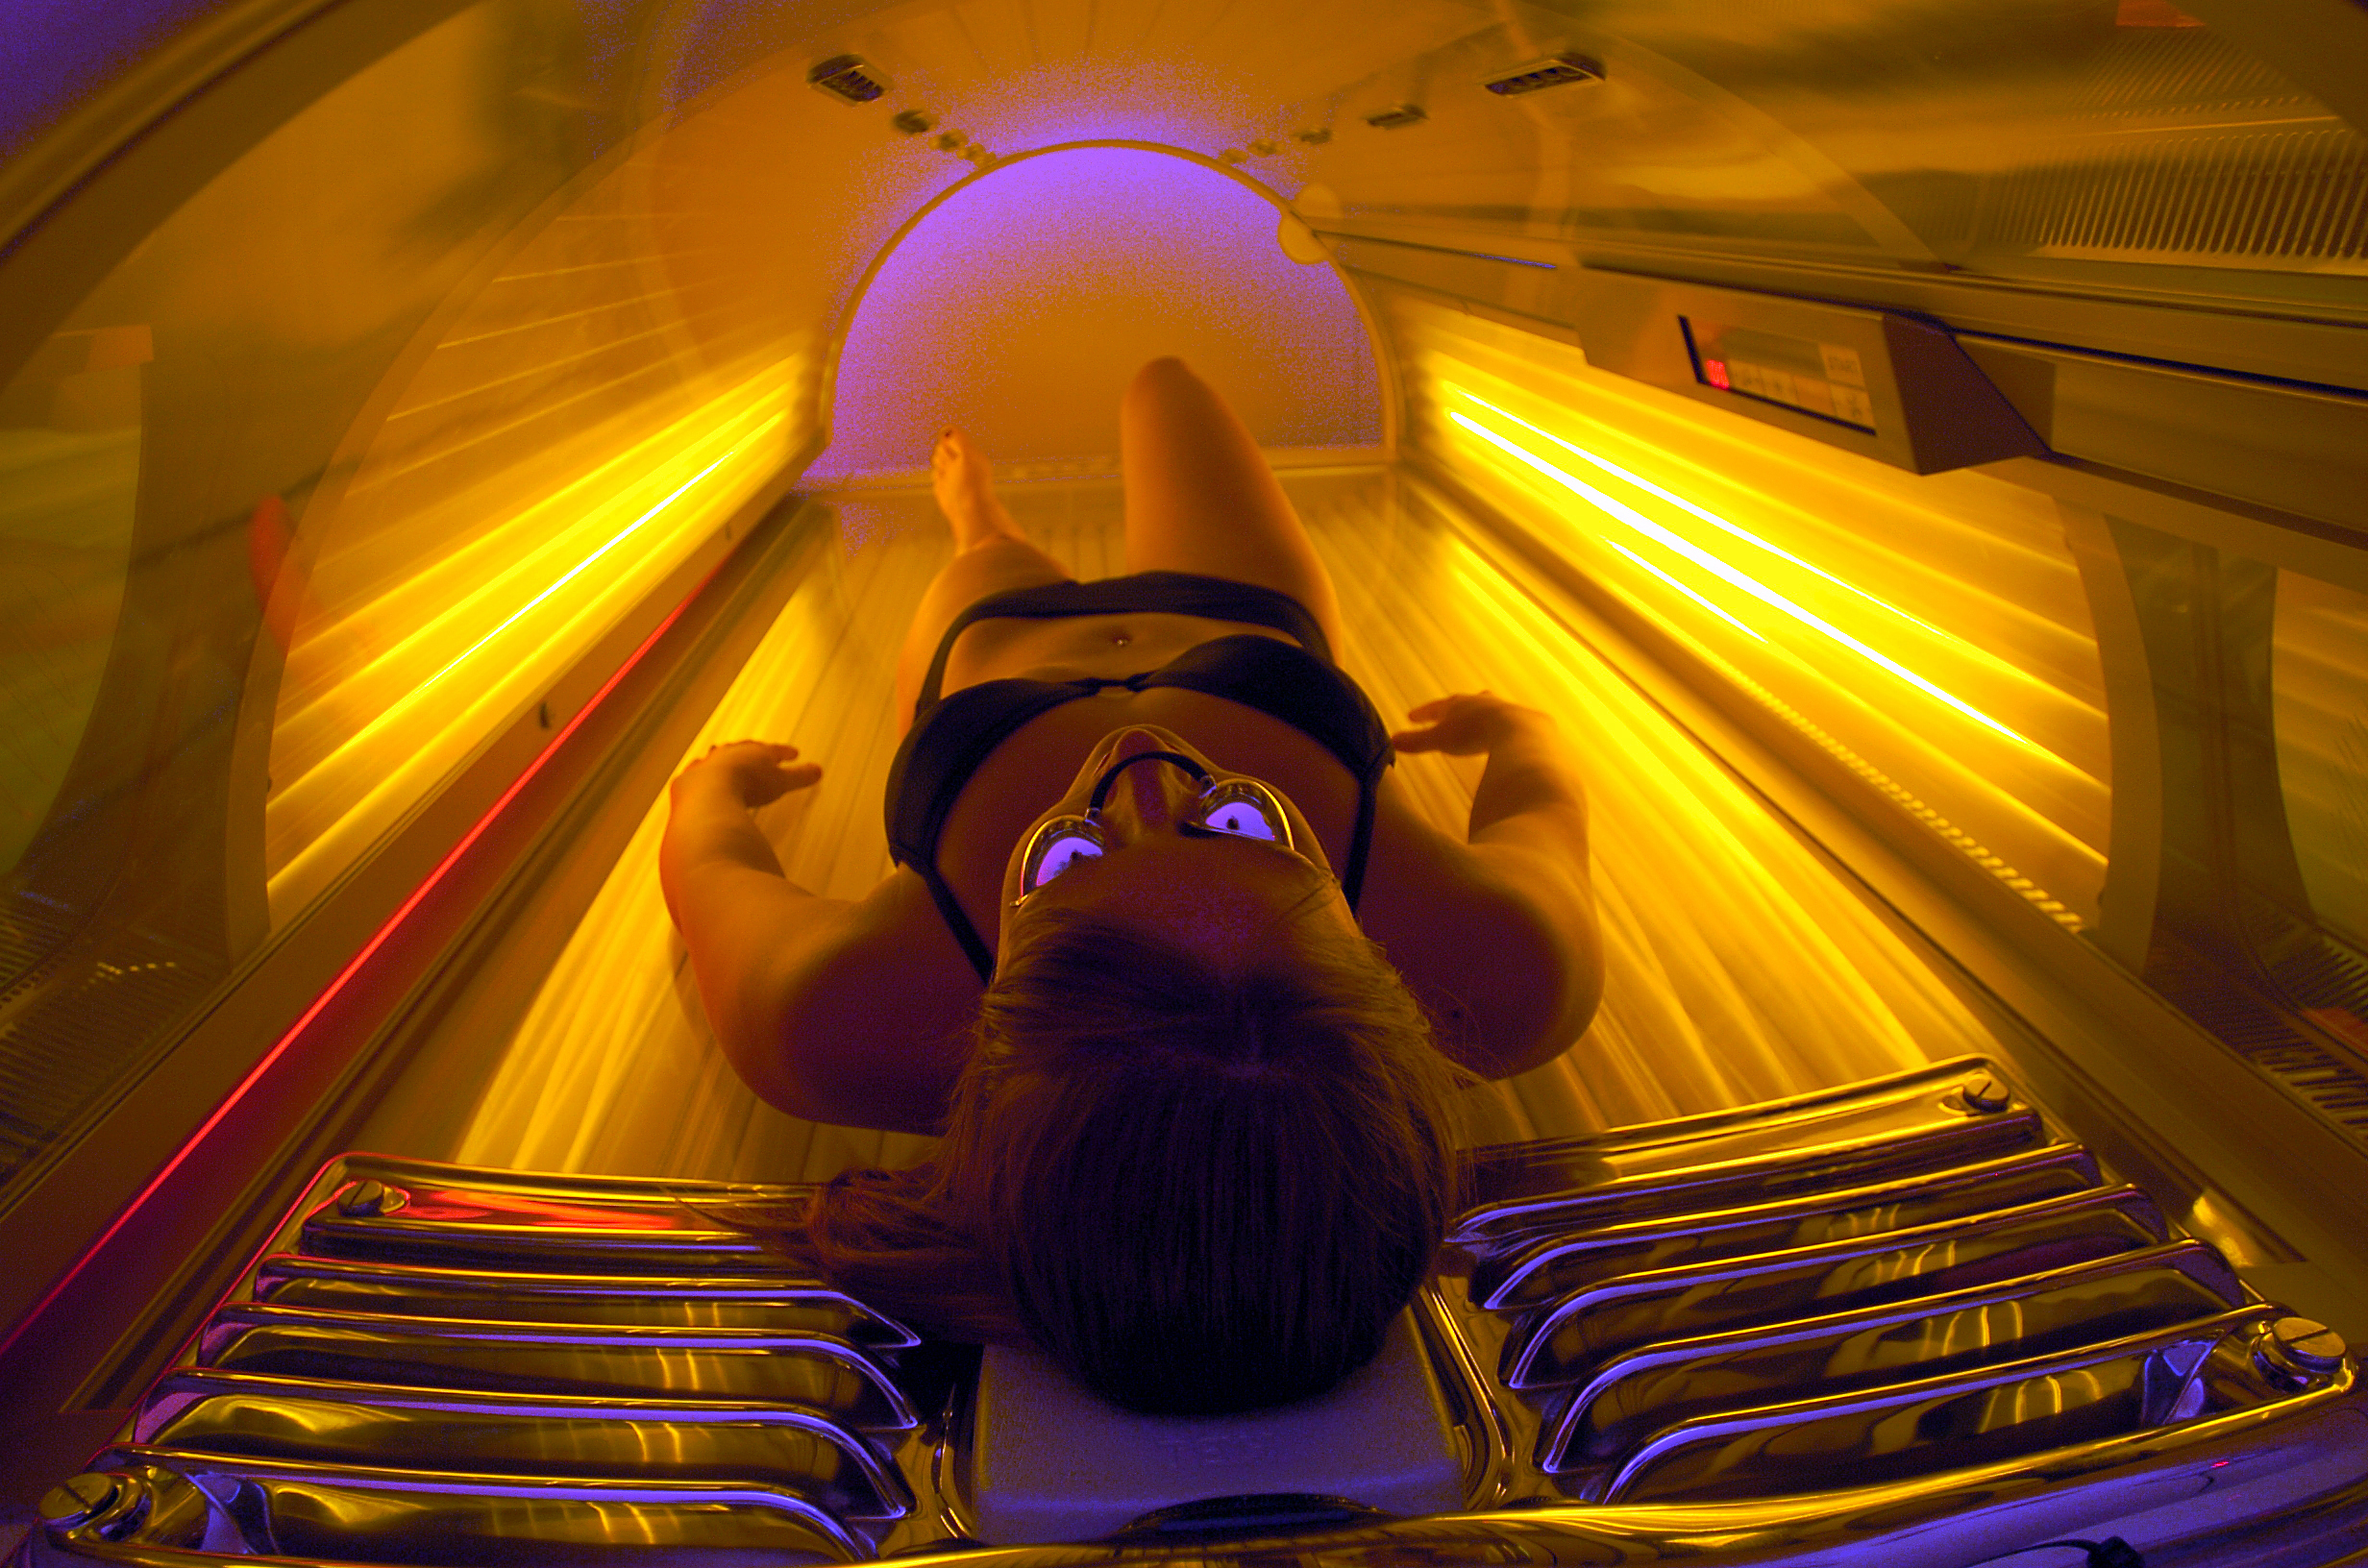 That Tanning beds and teens